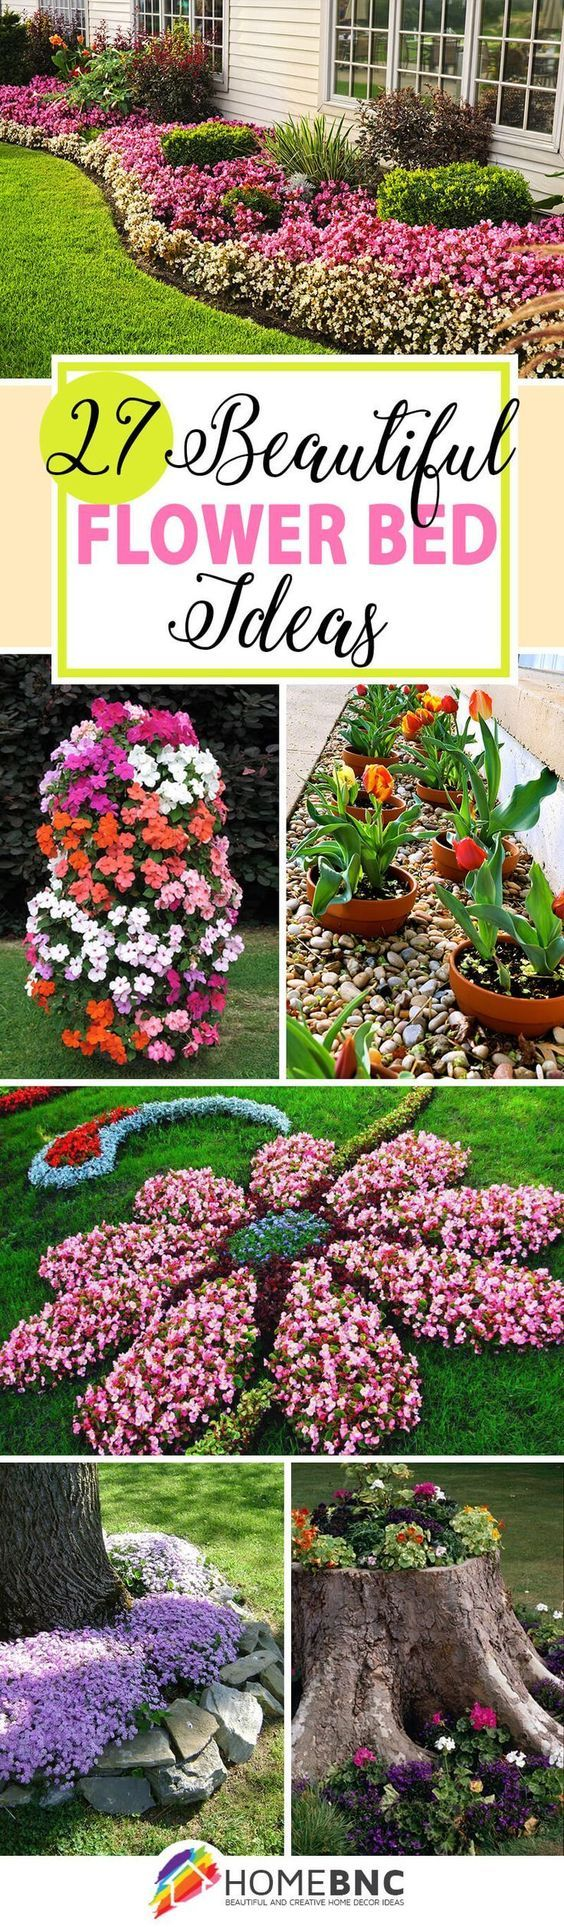 How to plant a flower garden - 27 Gorgeous And Creative Flower Bed Ideas To Try